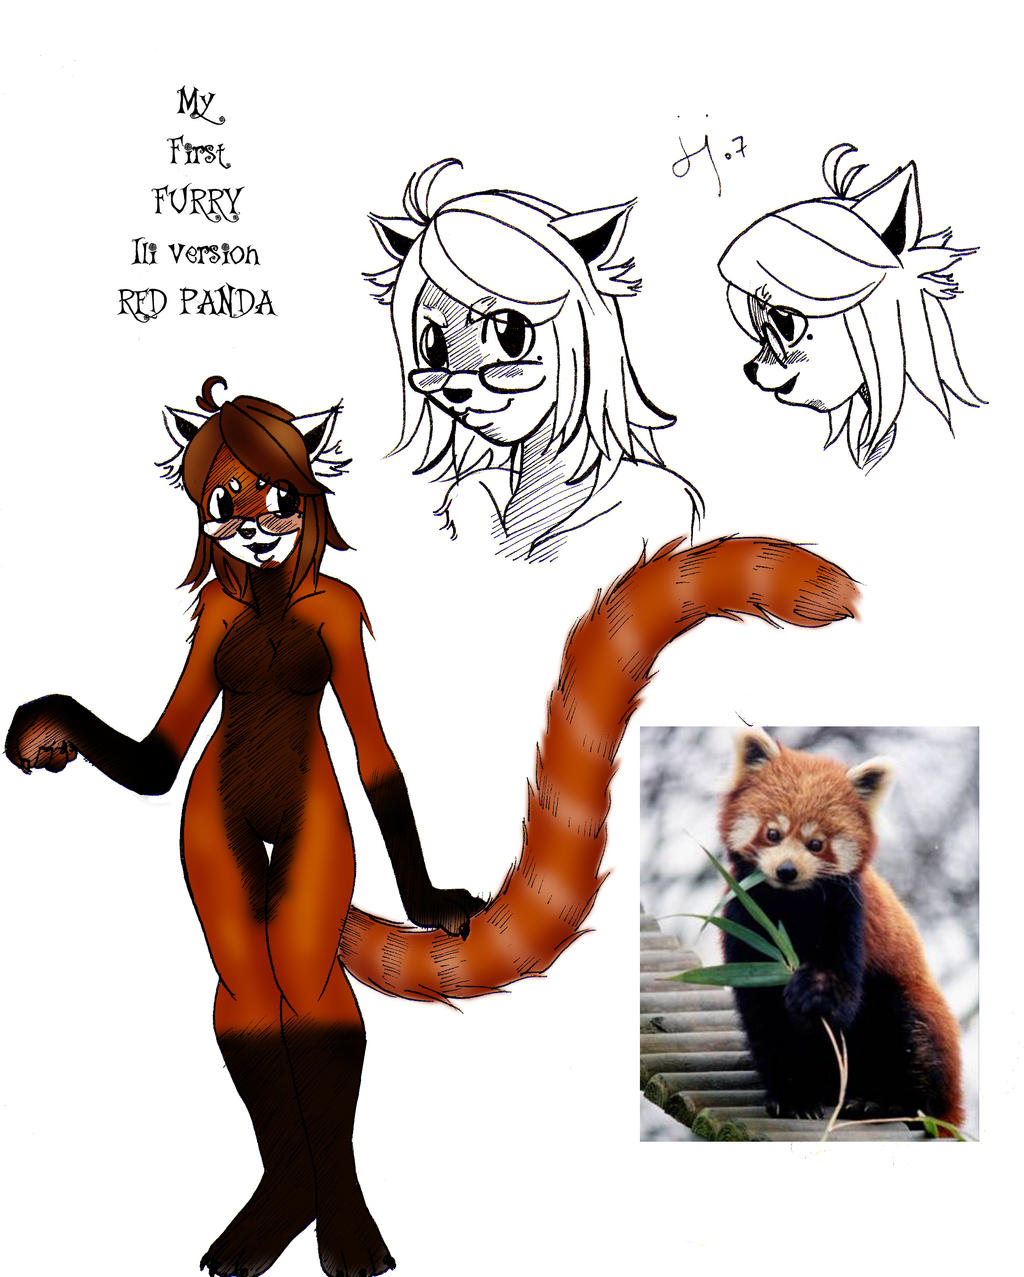 ILI THE RED PANDA First FURRY by jedilover02Red Panda Drawing Furry